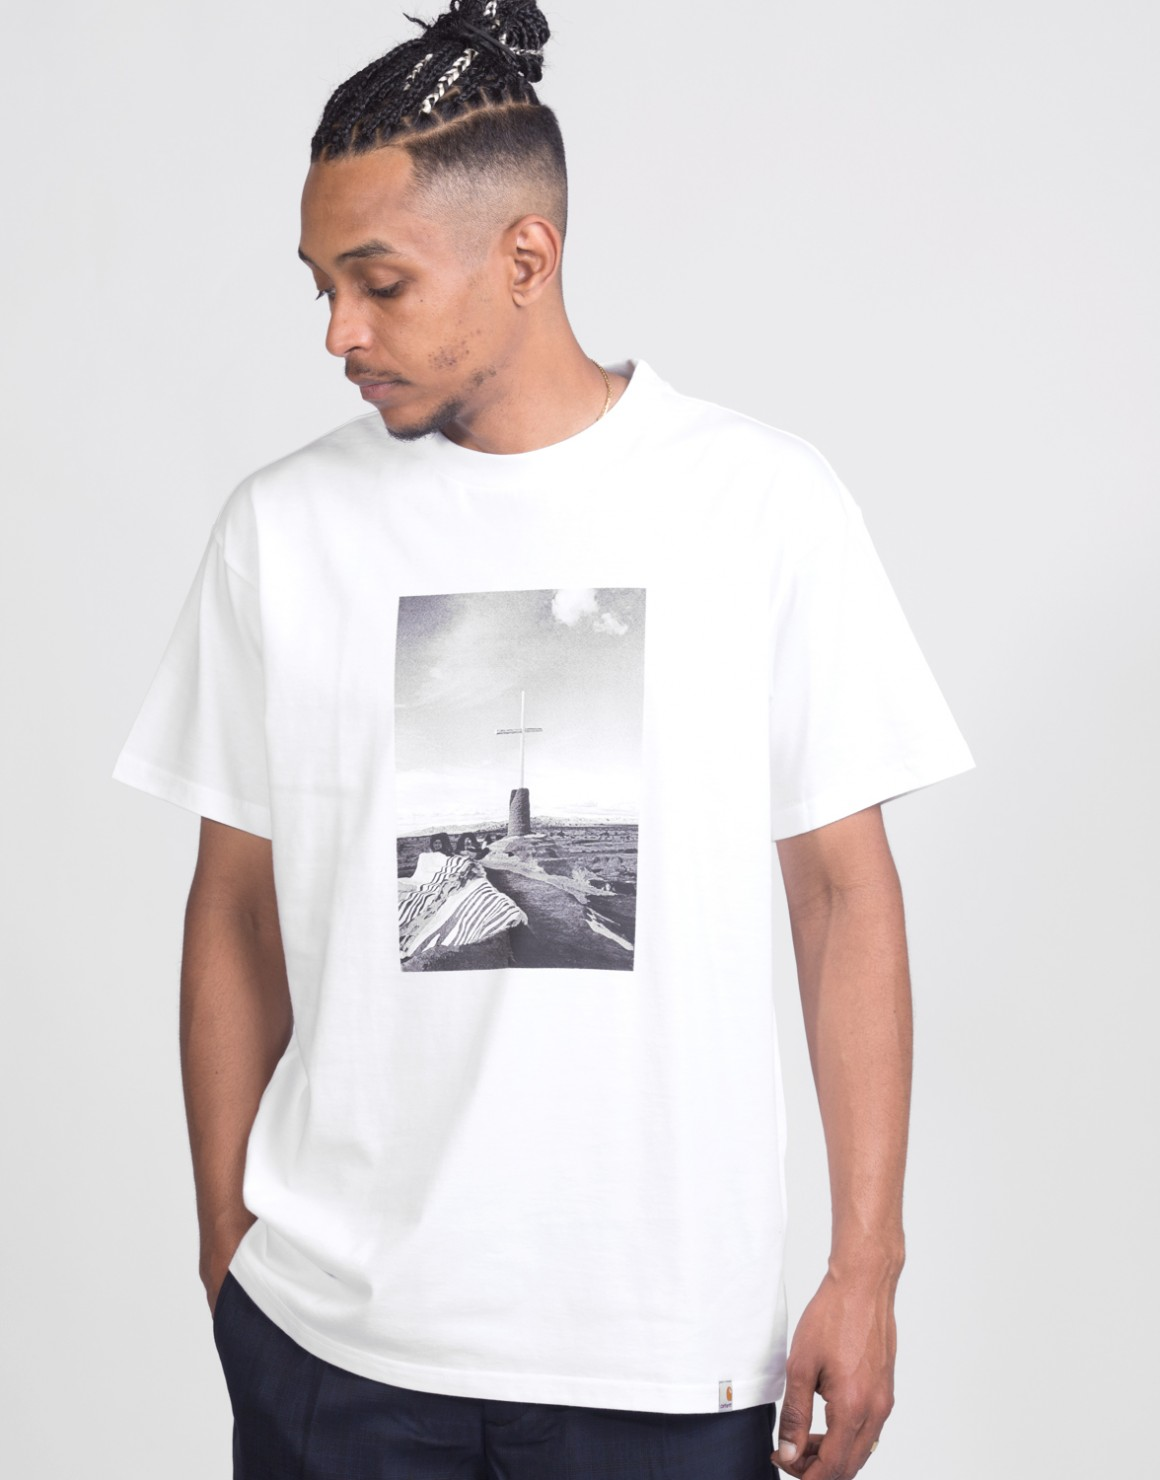 S/S Matt Martin Salvation Tee